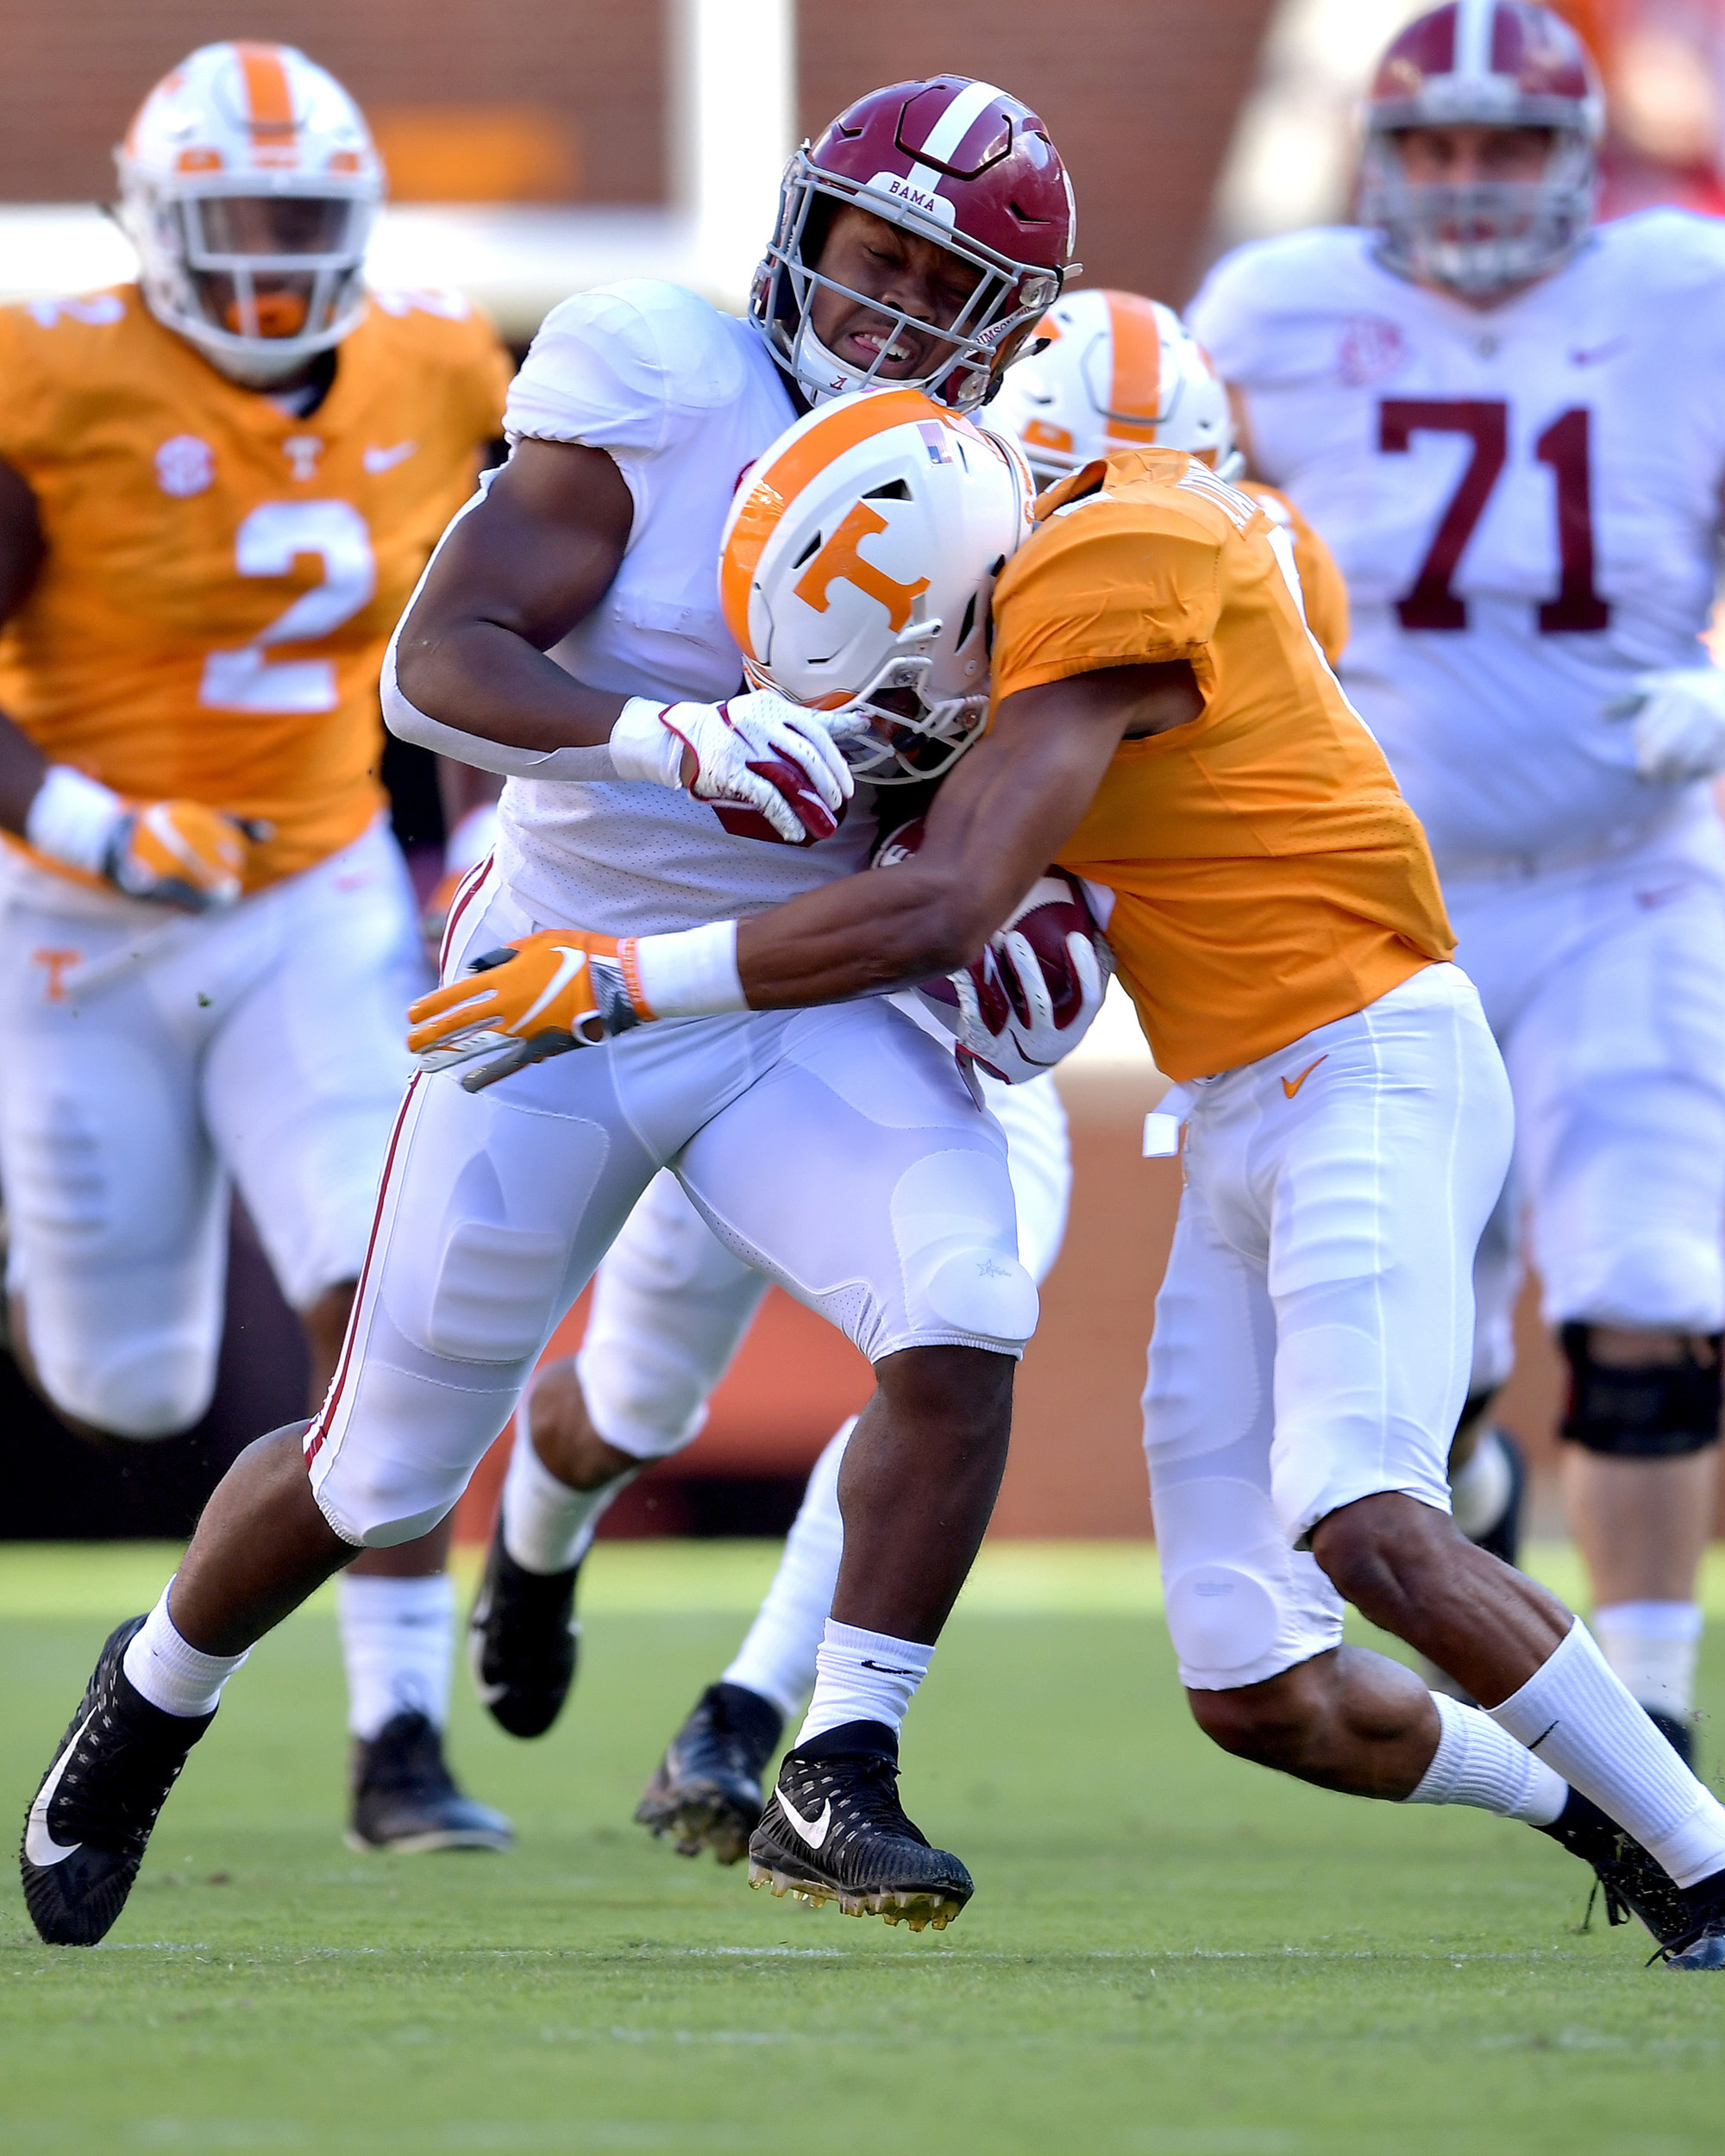 Alabama Crimson Tide running back Josh Jacobs (8) is tackled during the first half of the Alabama at Tennessee NCAA football game on Saturday, Oct. 20, 2018, at Neyland Stadium in Knoxville. Tenn. Alabama wins 58-21. (Photo by Lee Walls)